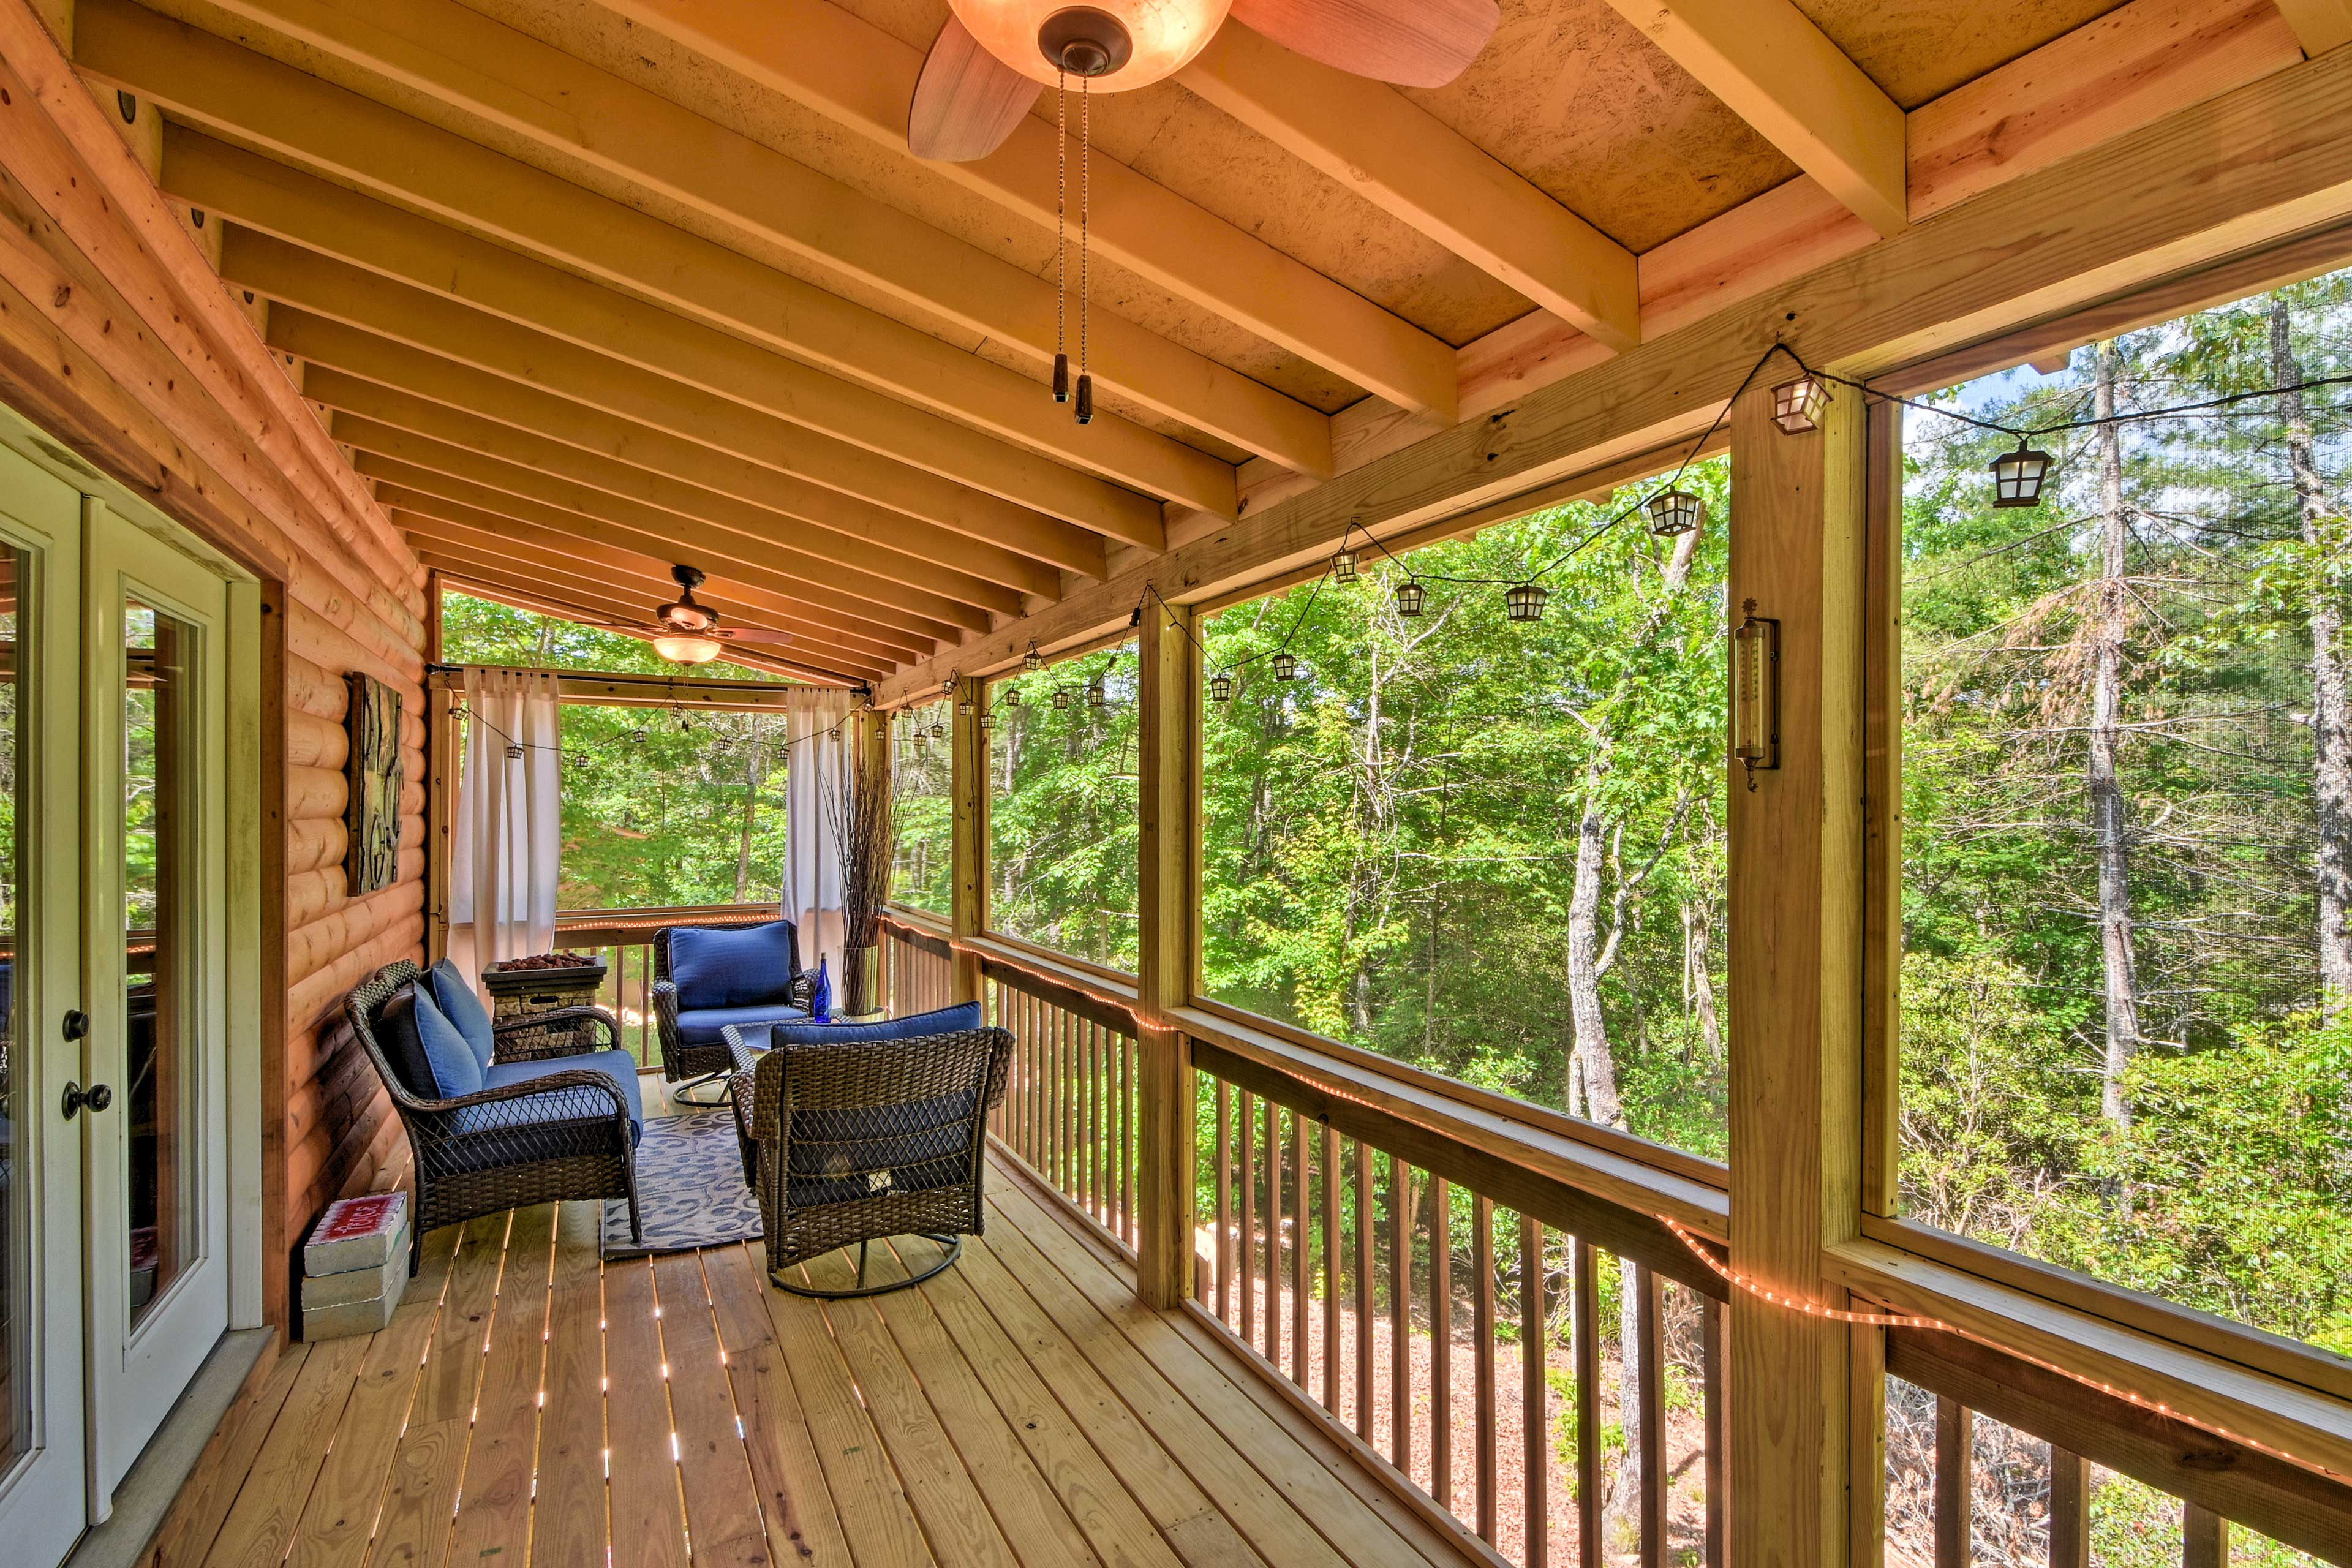 Look out over tranquil tree-lined scenery from your private perch.